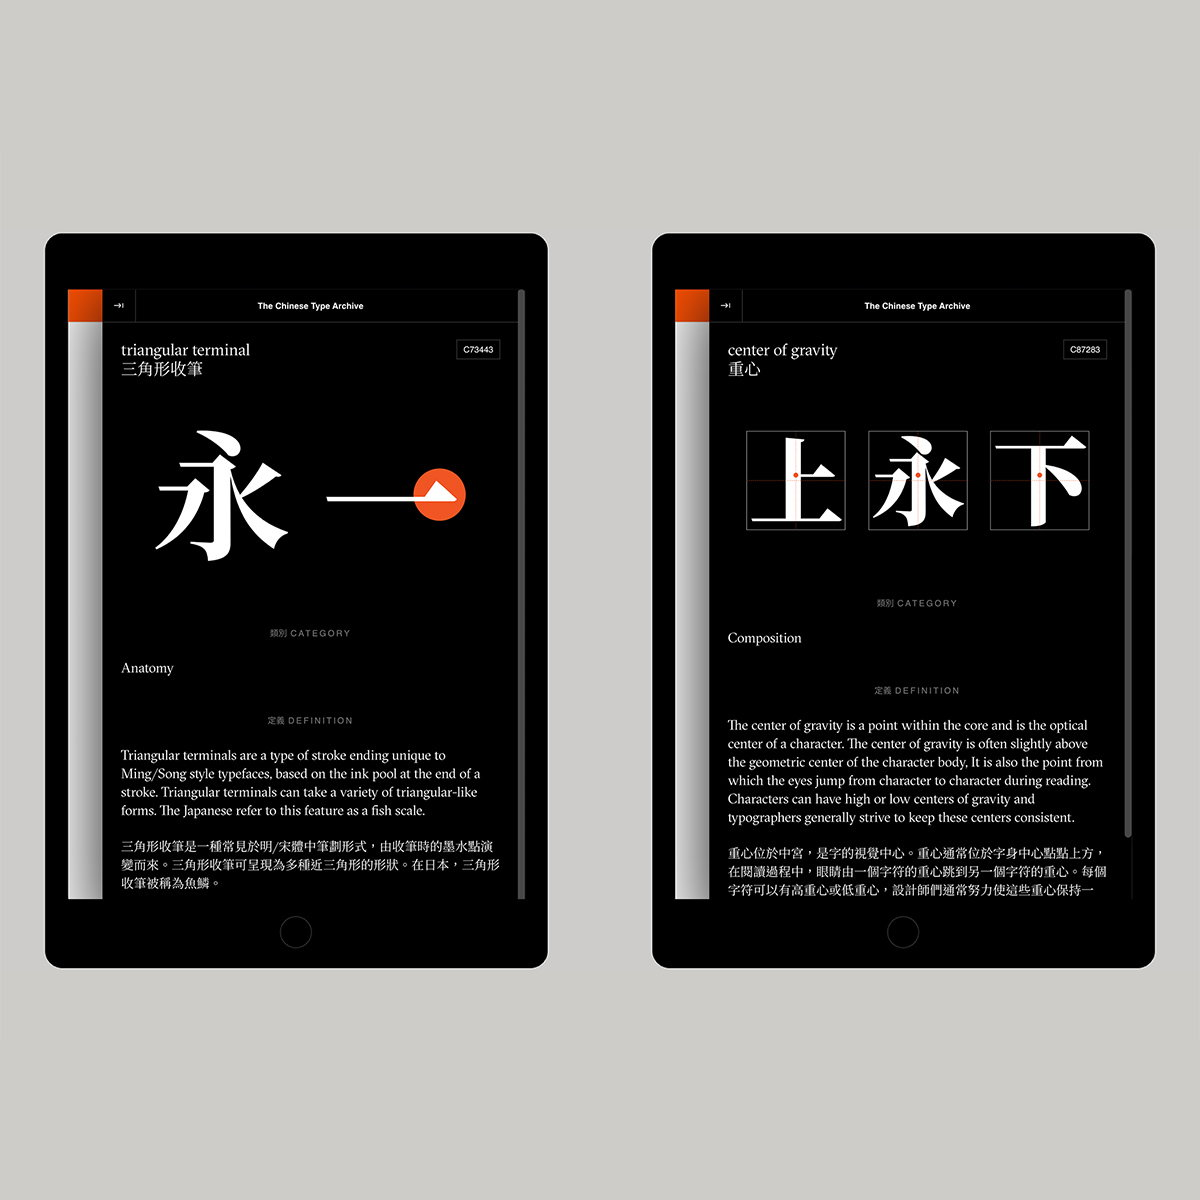 Synoptic Office Launches Open Source Archive of Chinese Typefaces